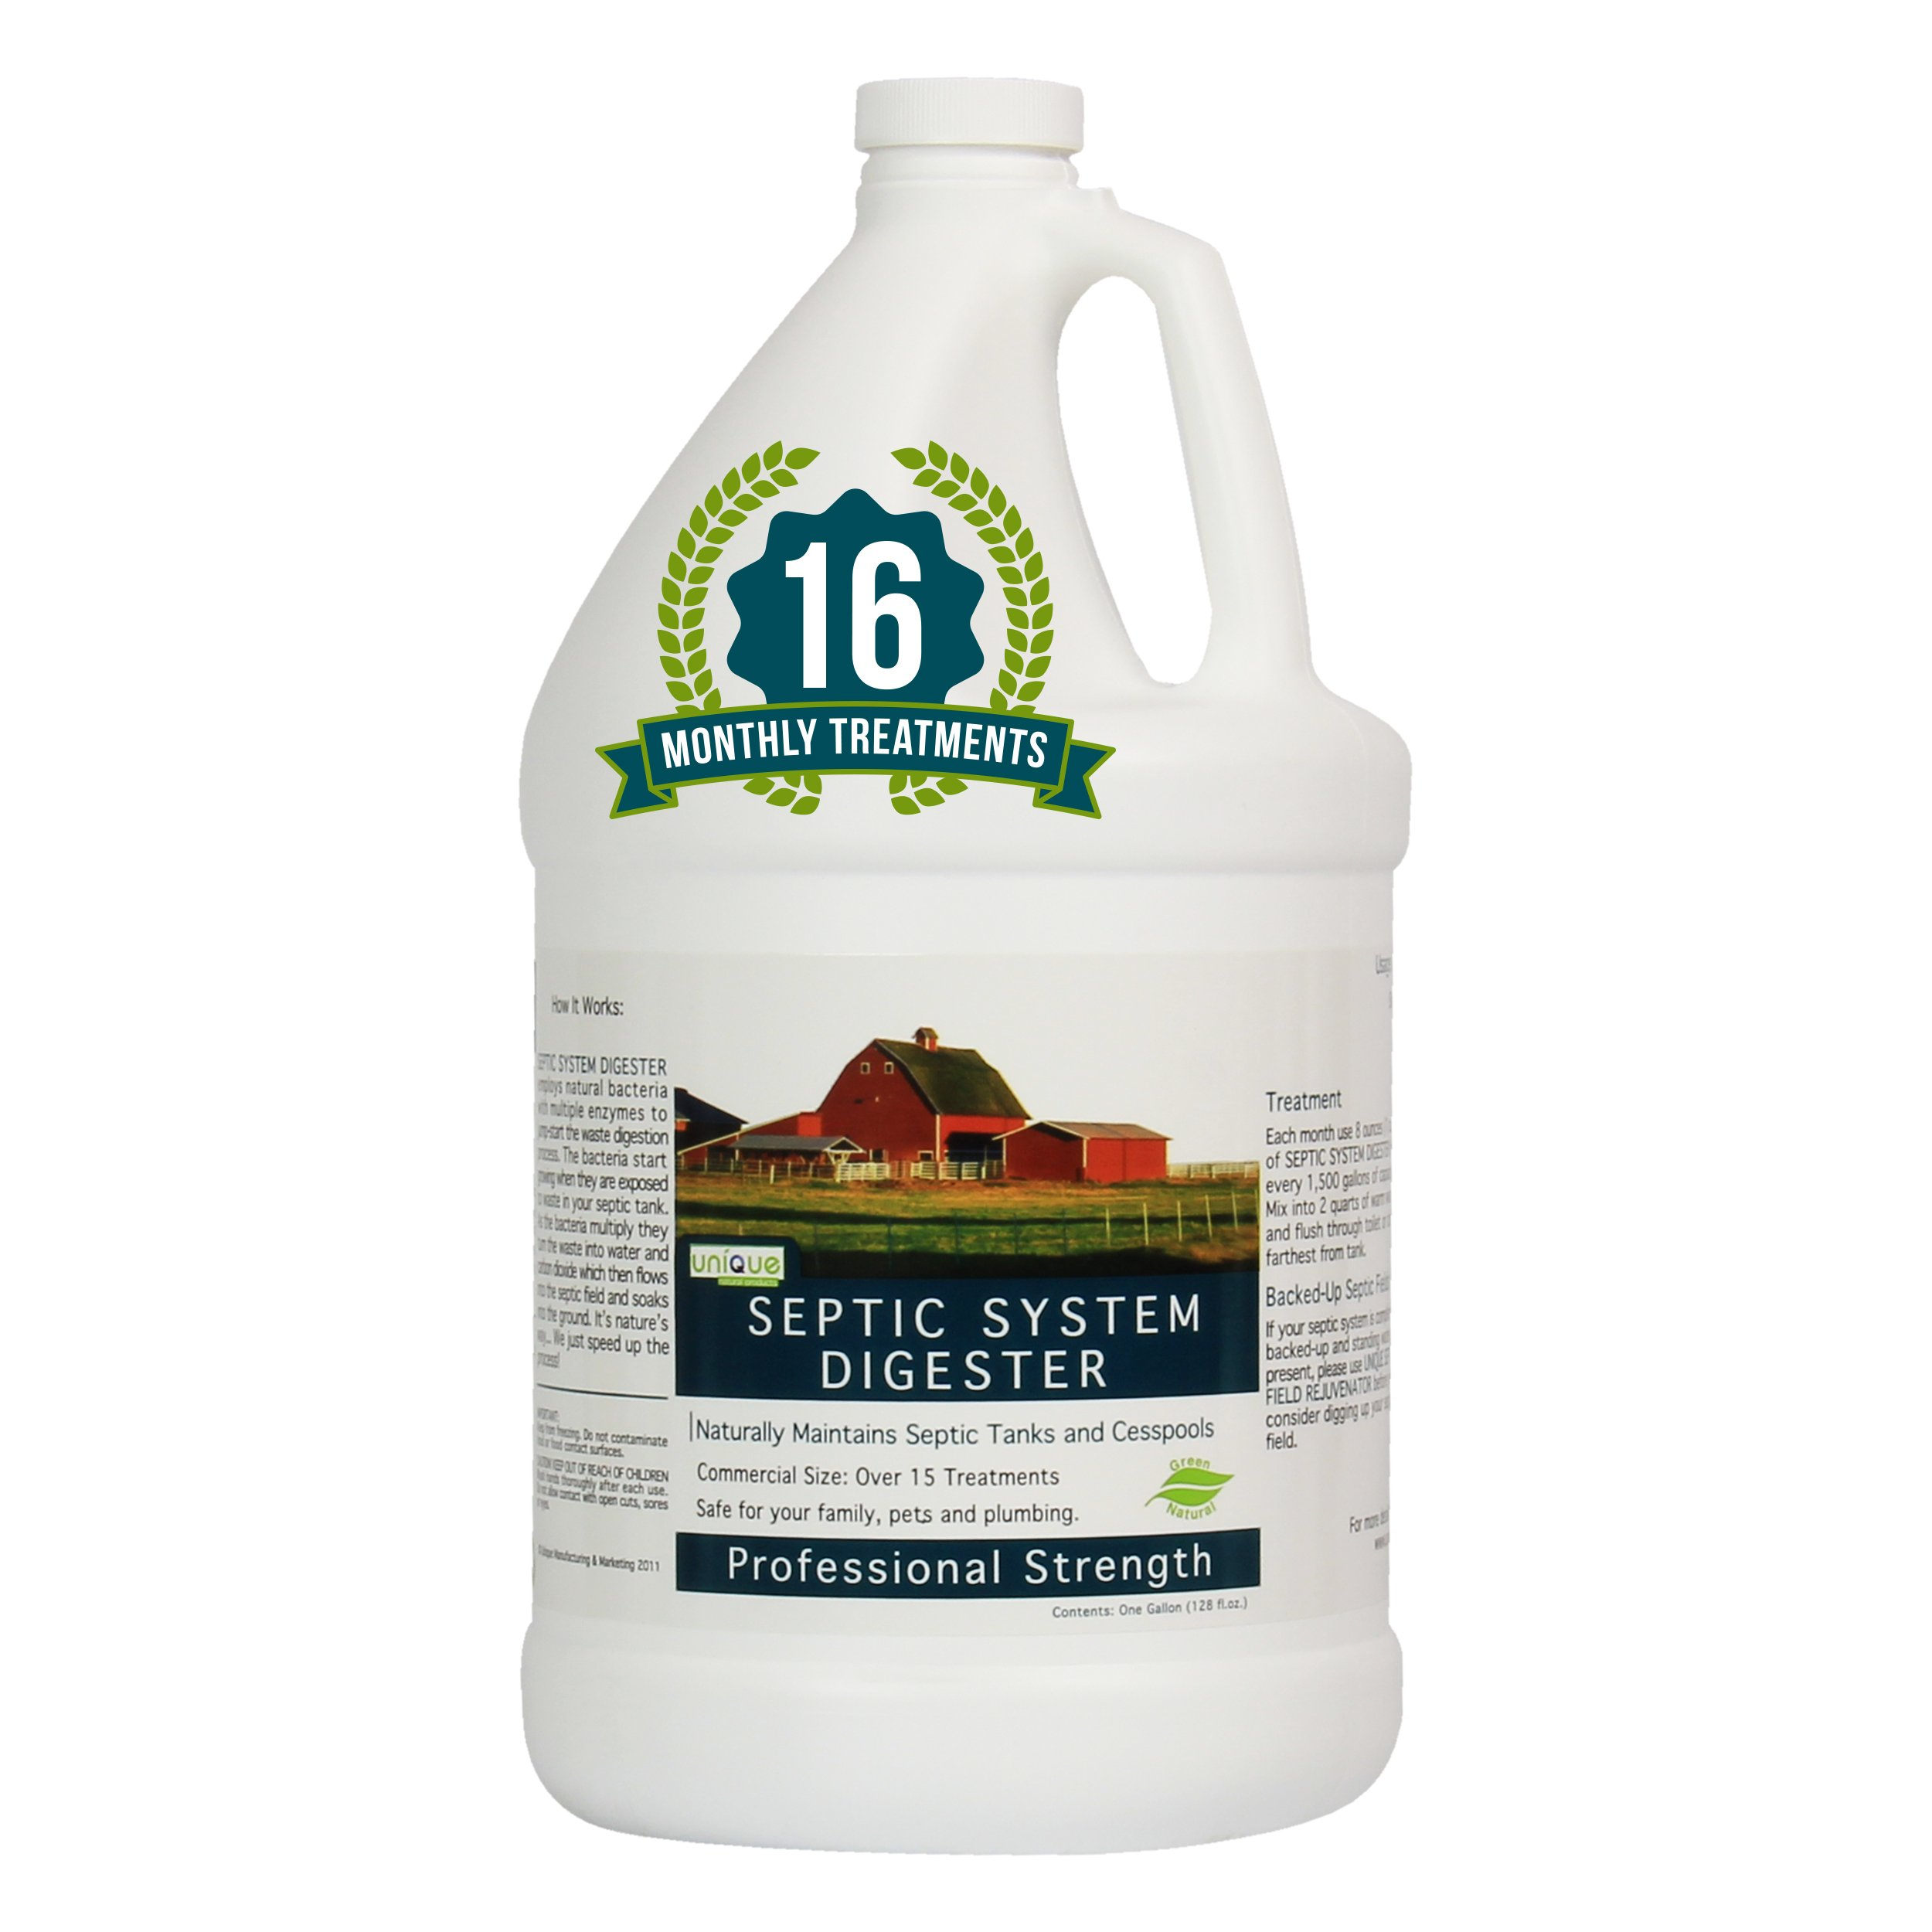 Unique Septic System Digester | 16 Monthly Treatments | Treats Septic Systems Of All Sizes | Reduces sludge quickly preventing foul odors and disgusting backups | Reduces frequency of septic pump outs by Unique Natural Products